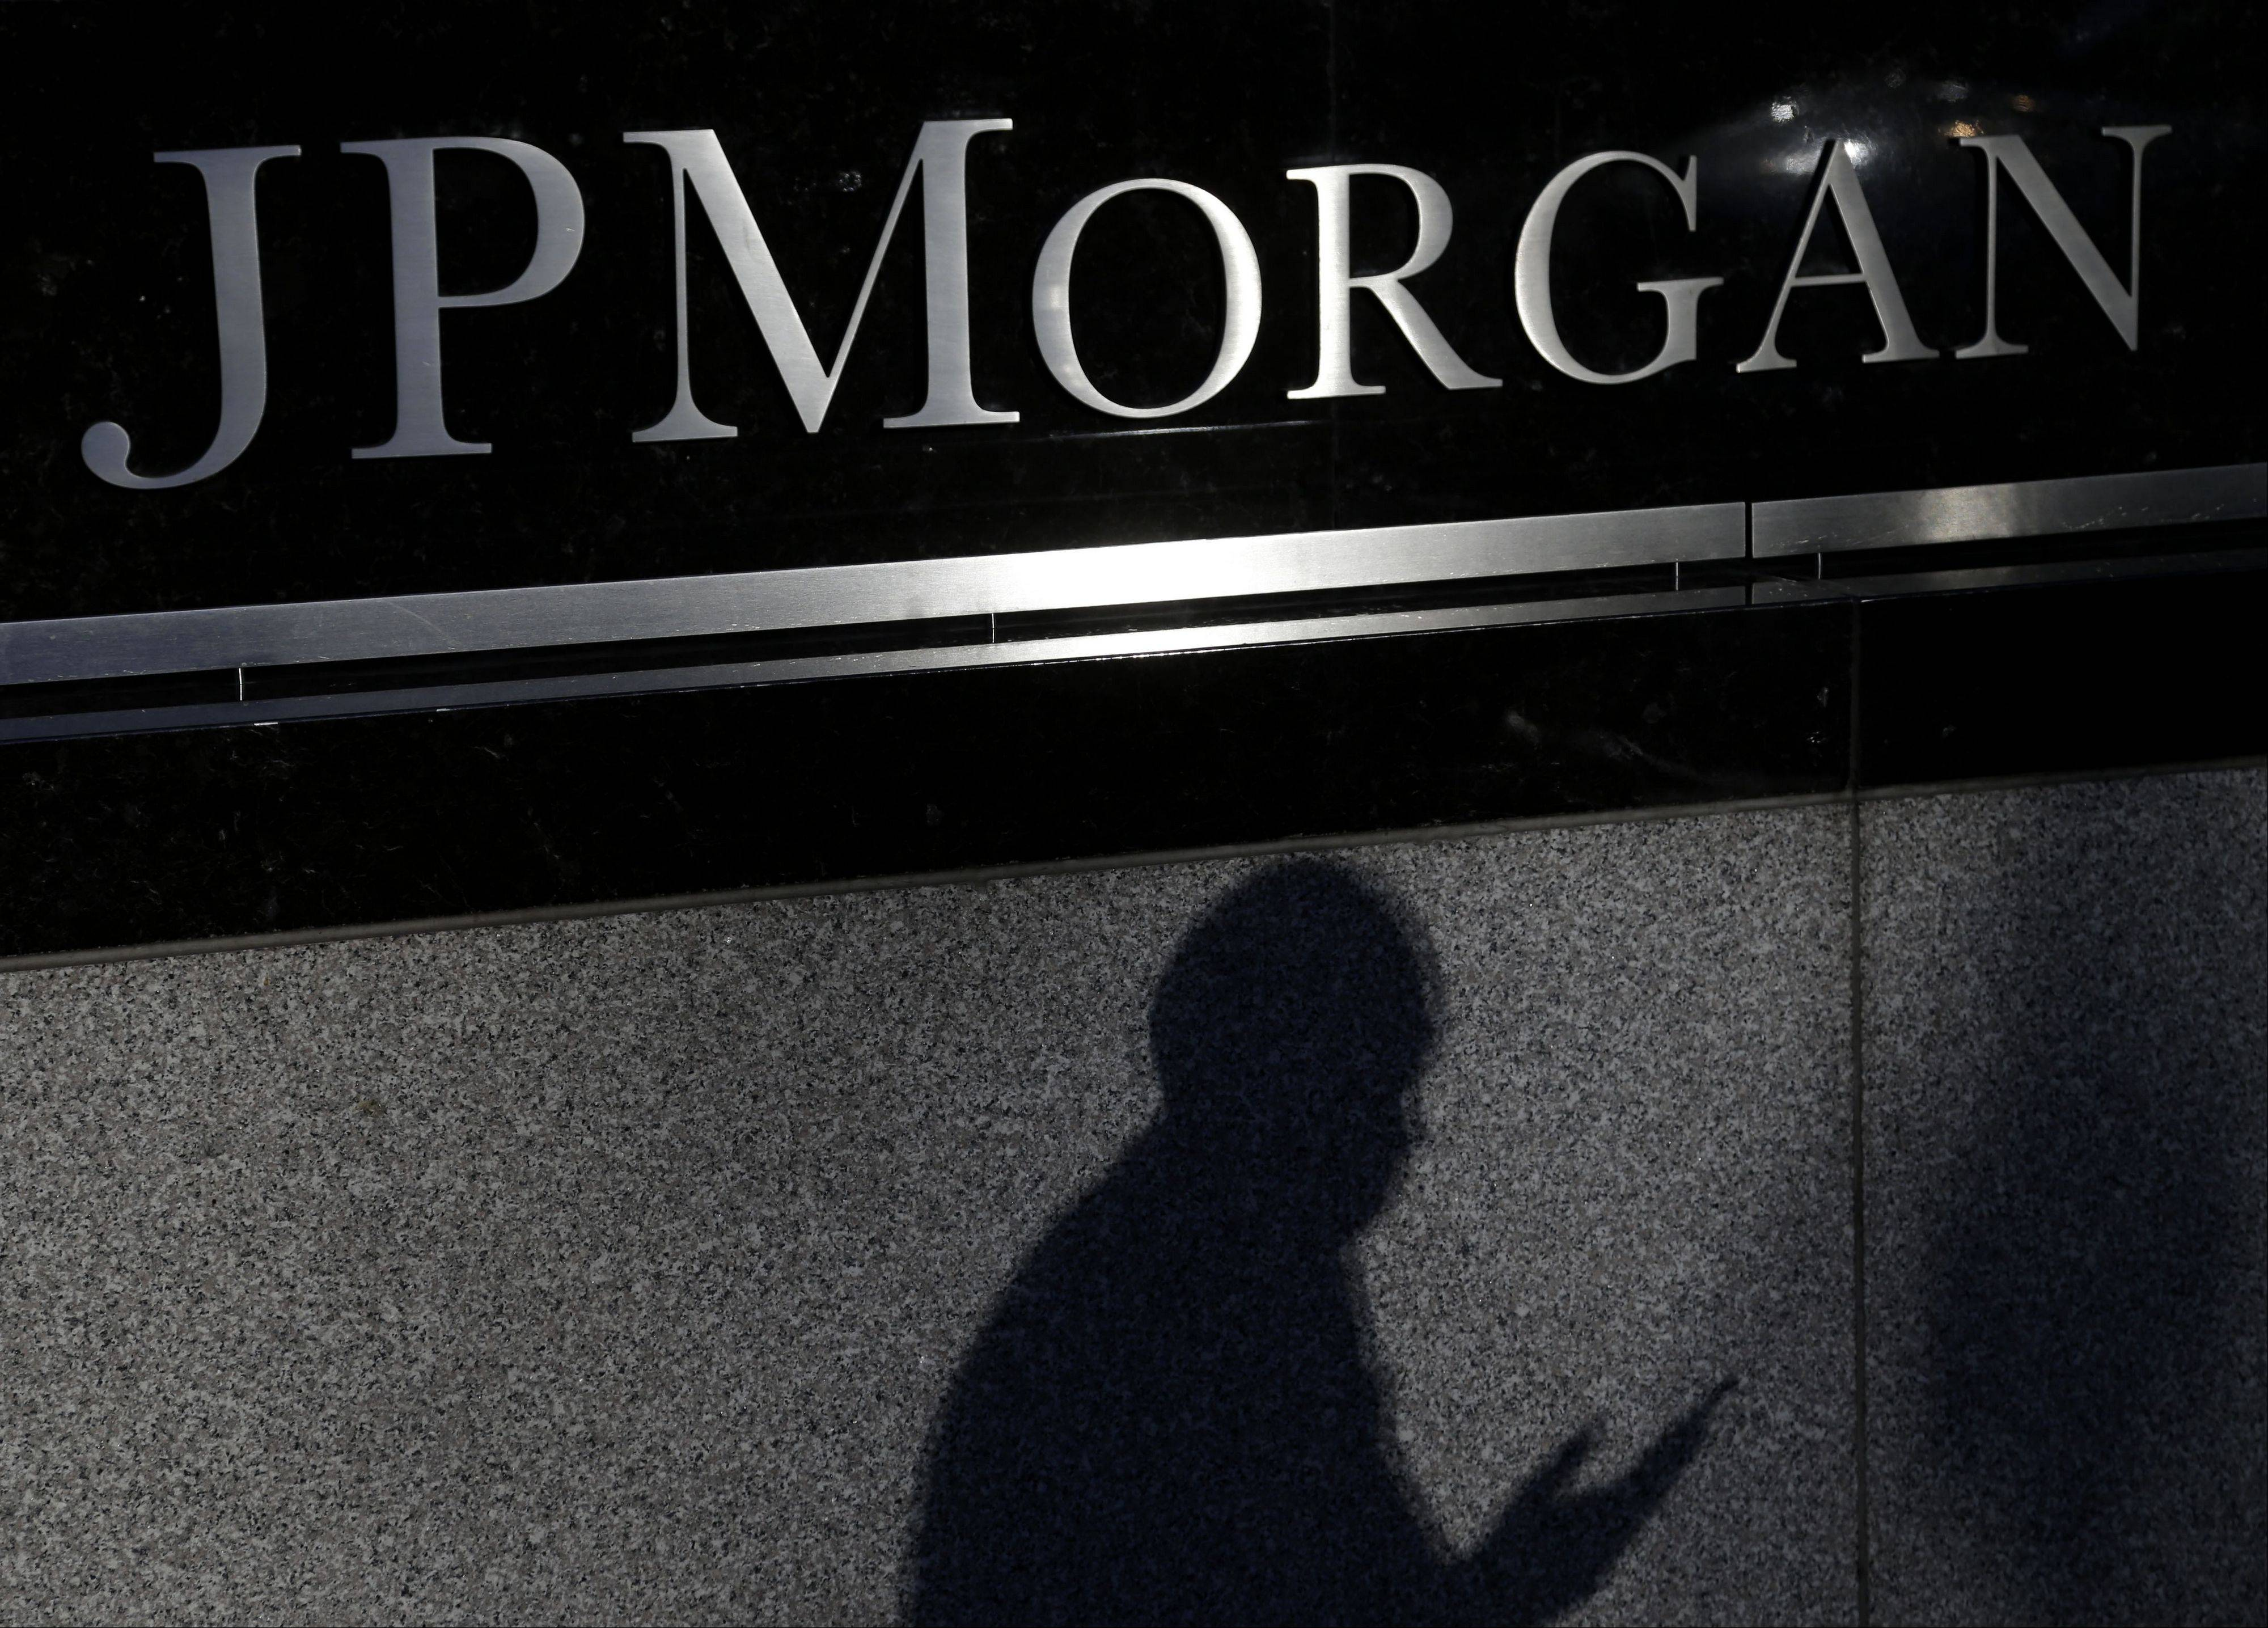 It was announced Tuesday that the Justice Department and JPMorgan Chase & Co. settled all issues on a $13 billion agreement that is the largest settlement ever reached between the government and a corporation.